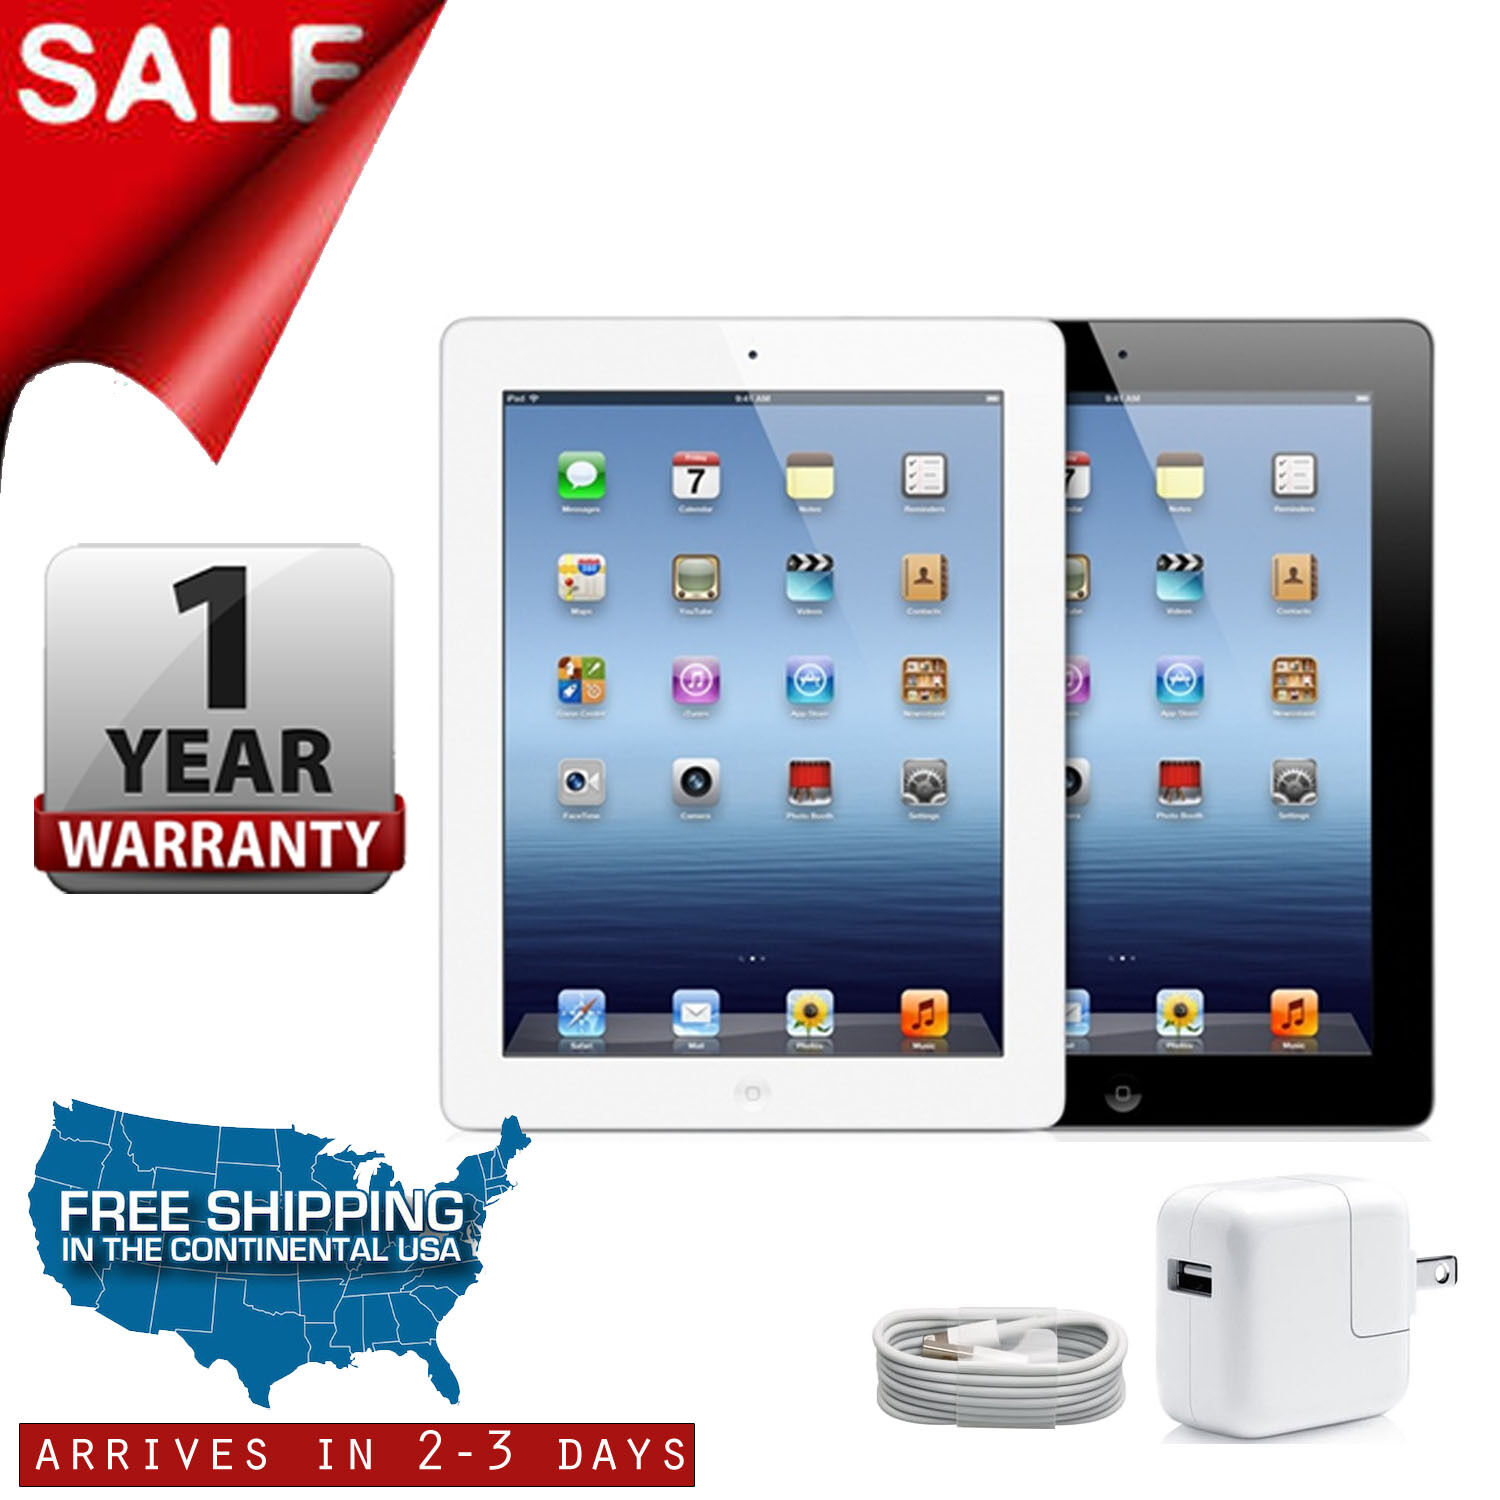 Apple iPad 2 16GB/32GB/64GB Black/White 9.7in Wi-Fi Tablet One-Year Warranty